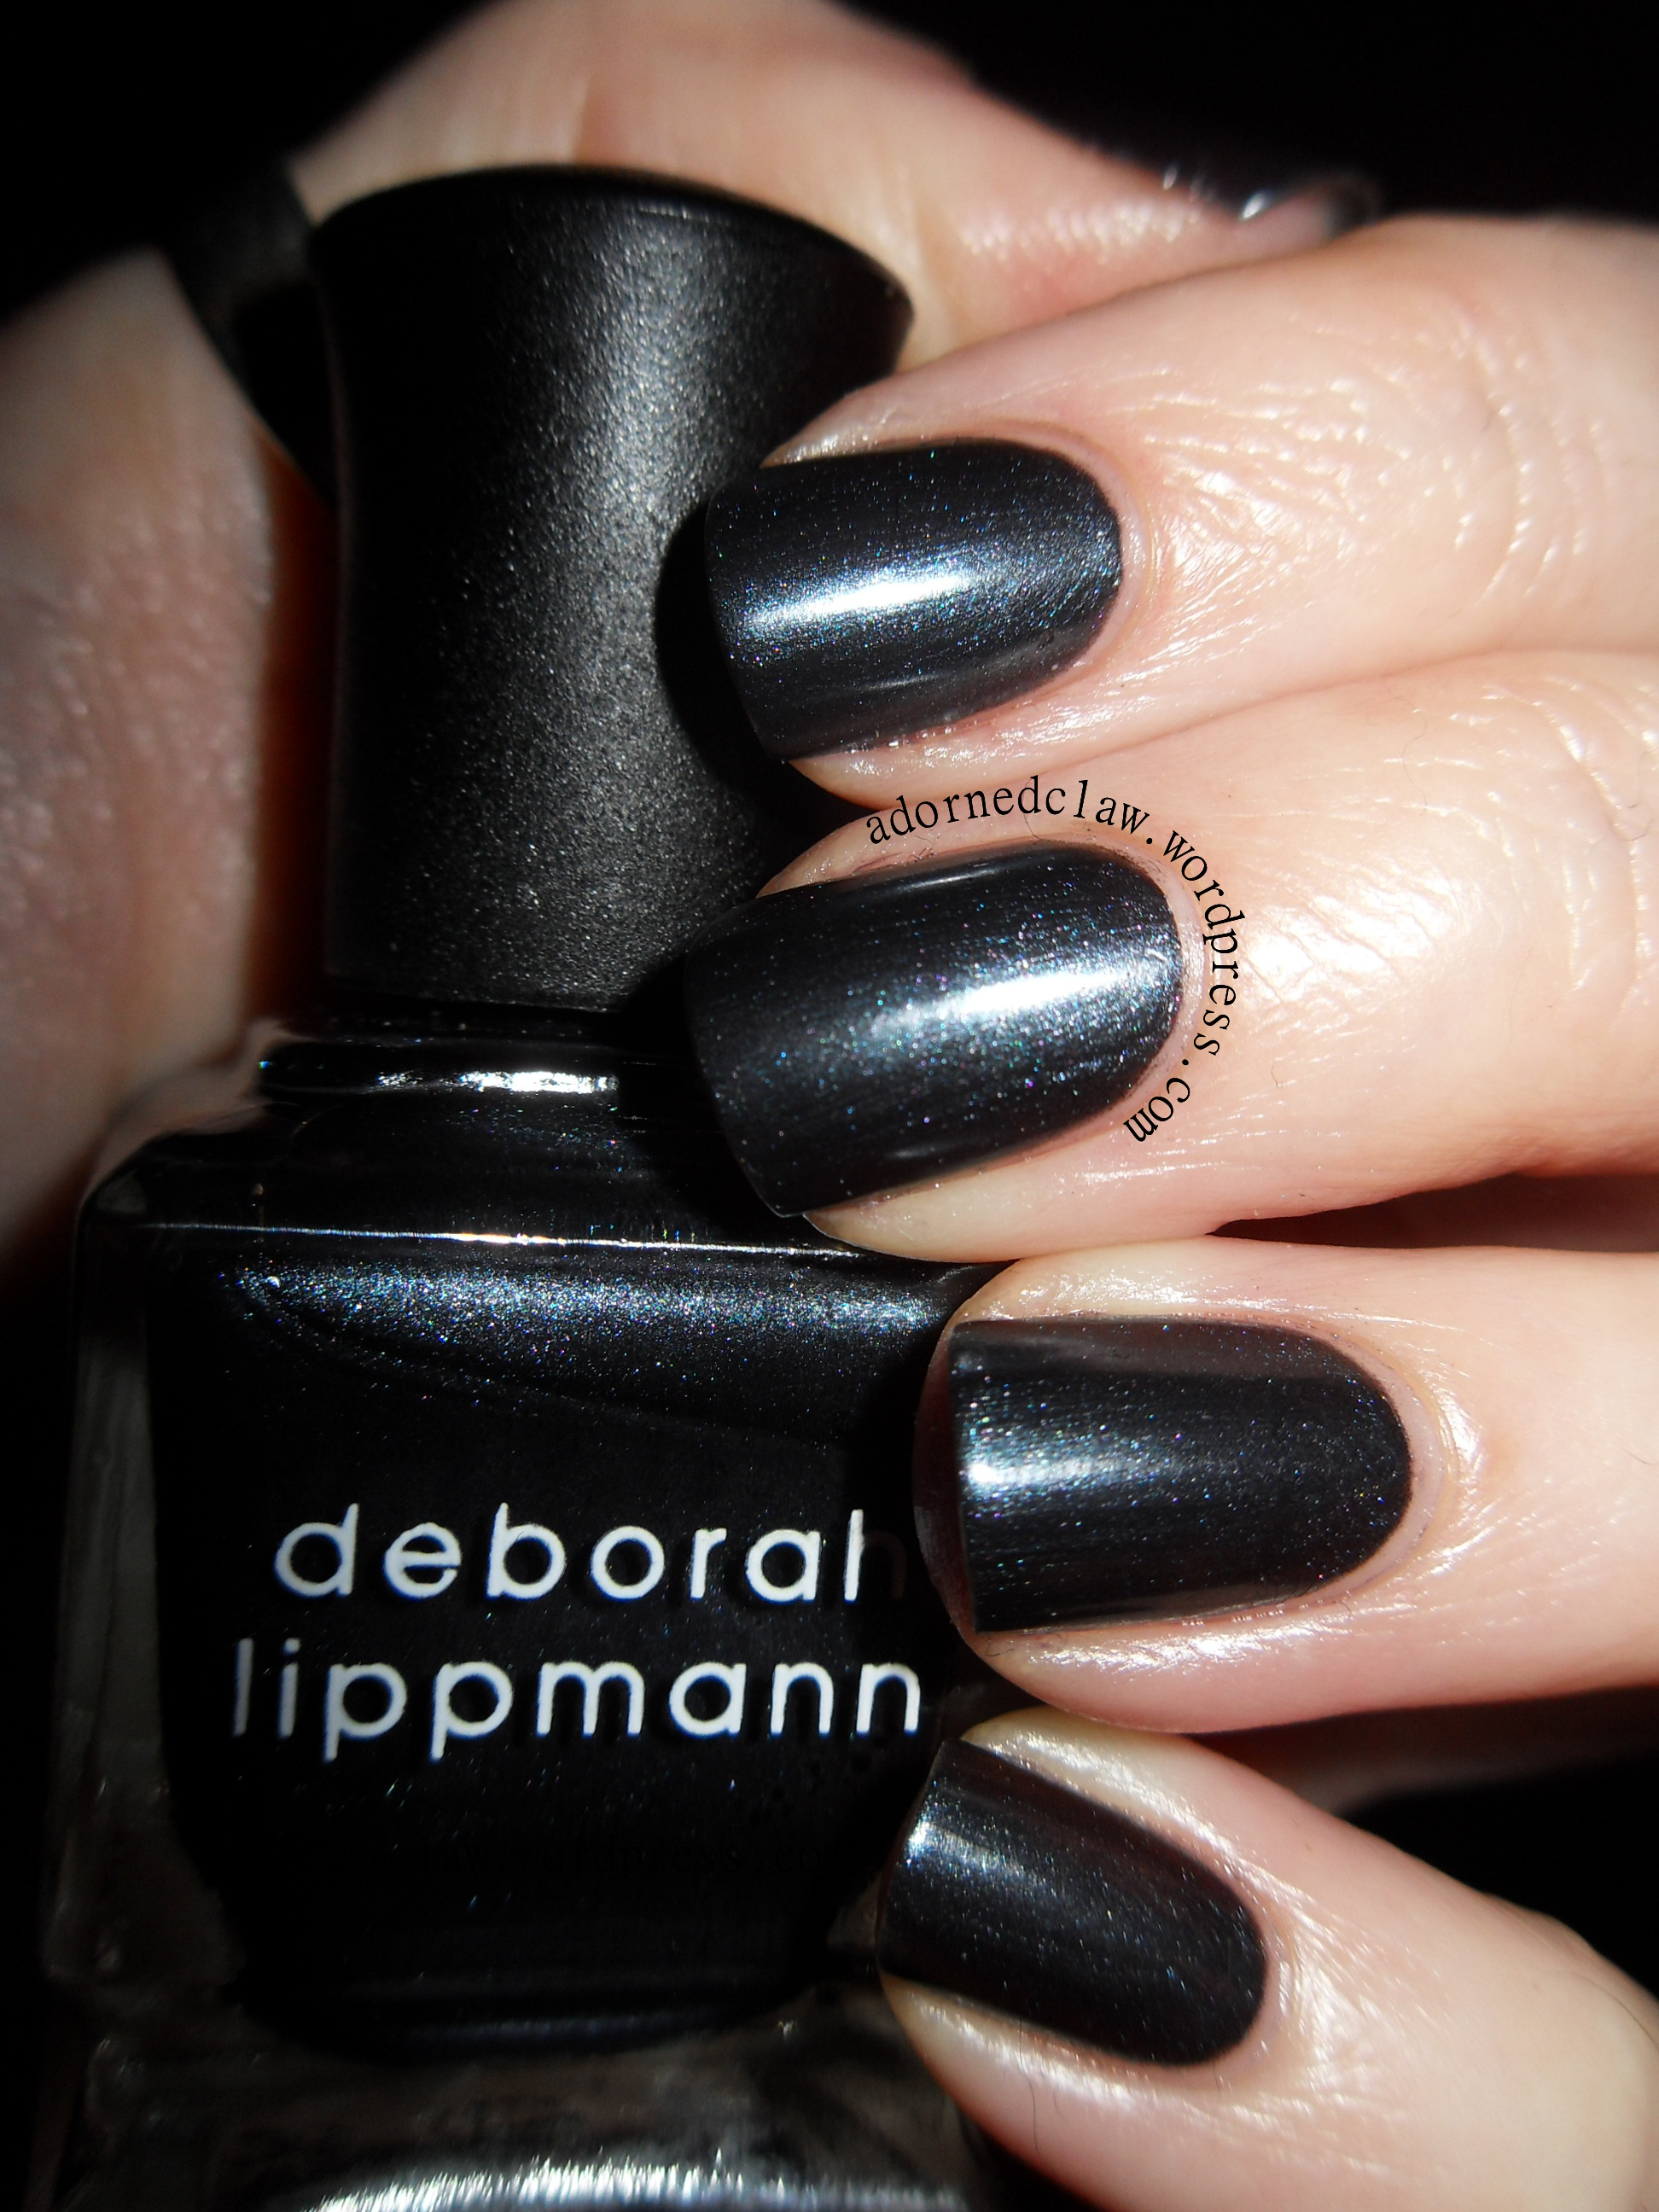 Deborah Lippmann Hit me With Your Best Shot | The Adorned Claw